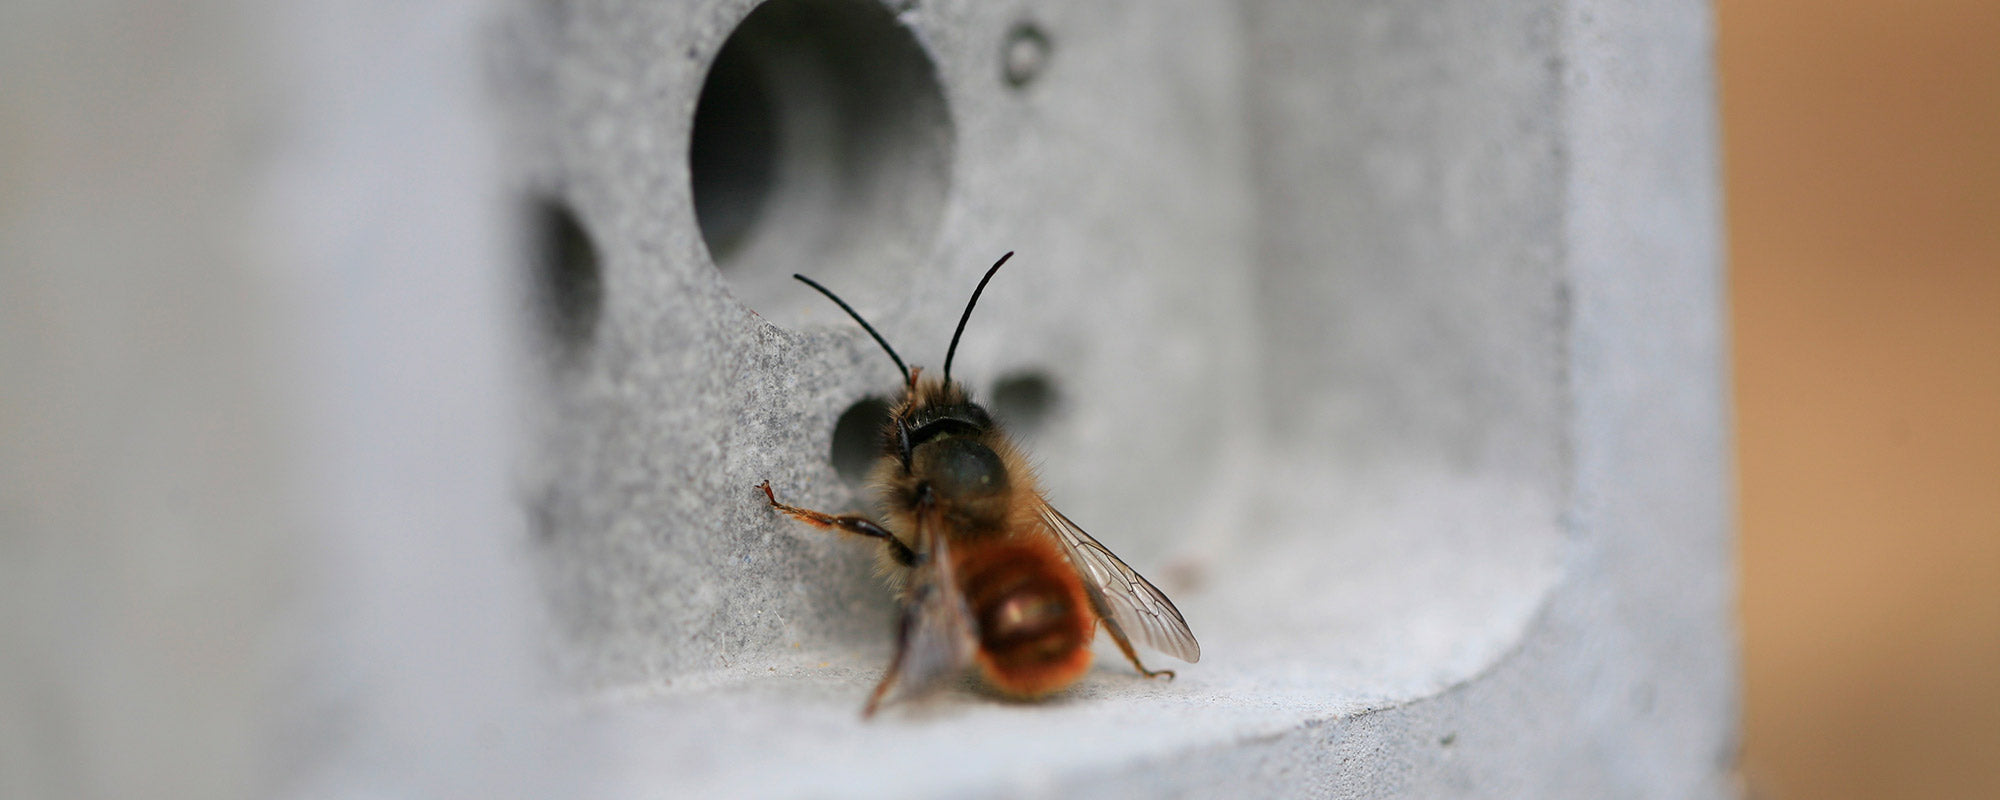 Solitary bee on a bee brick